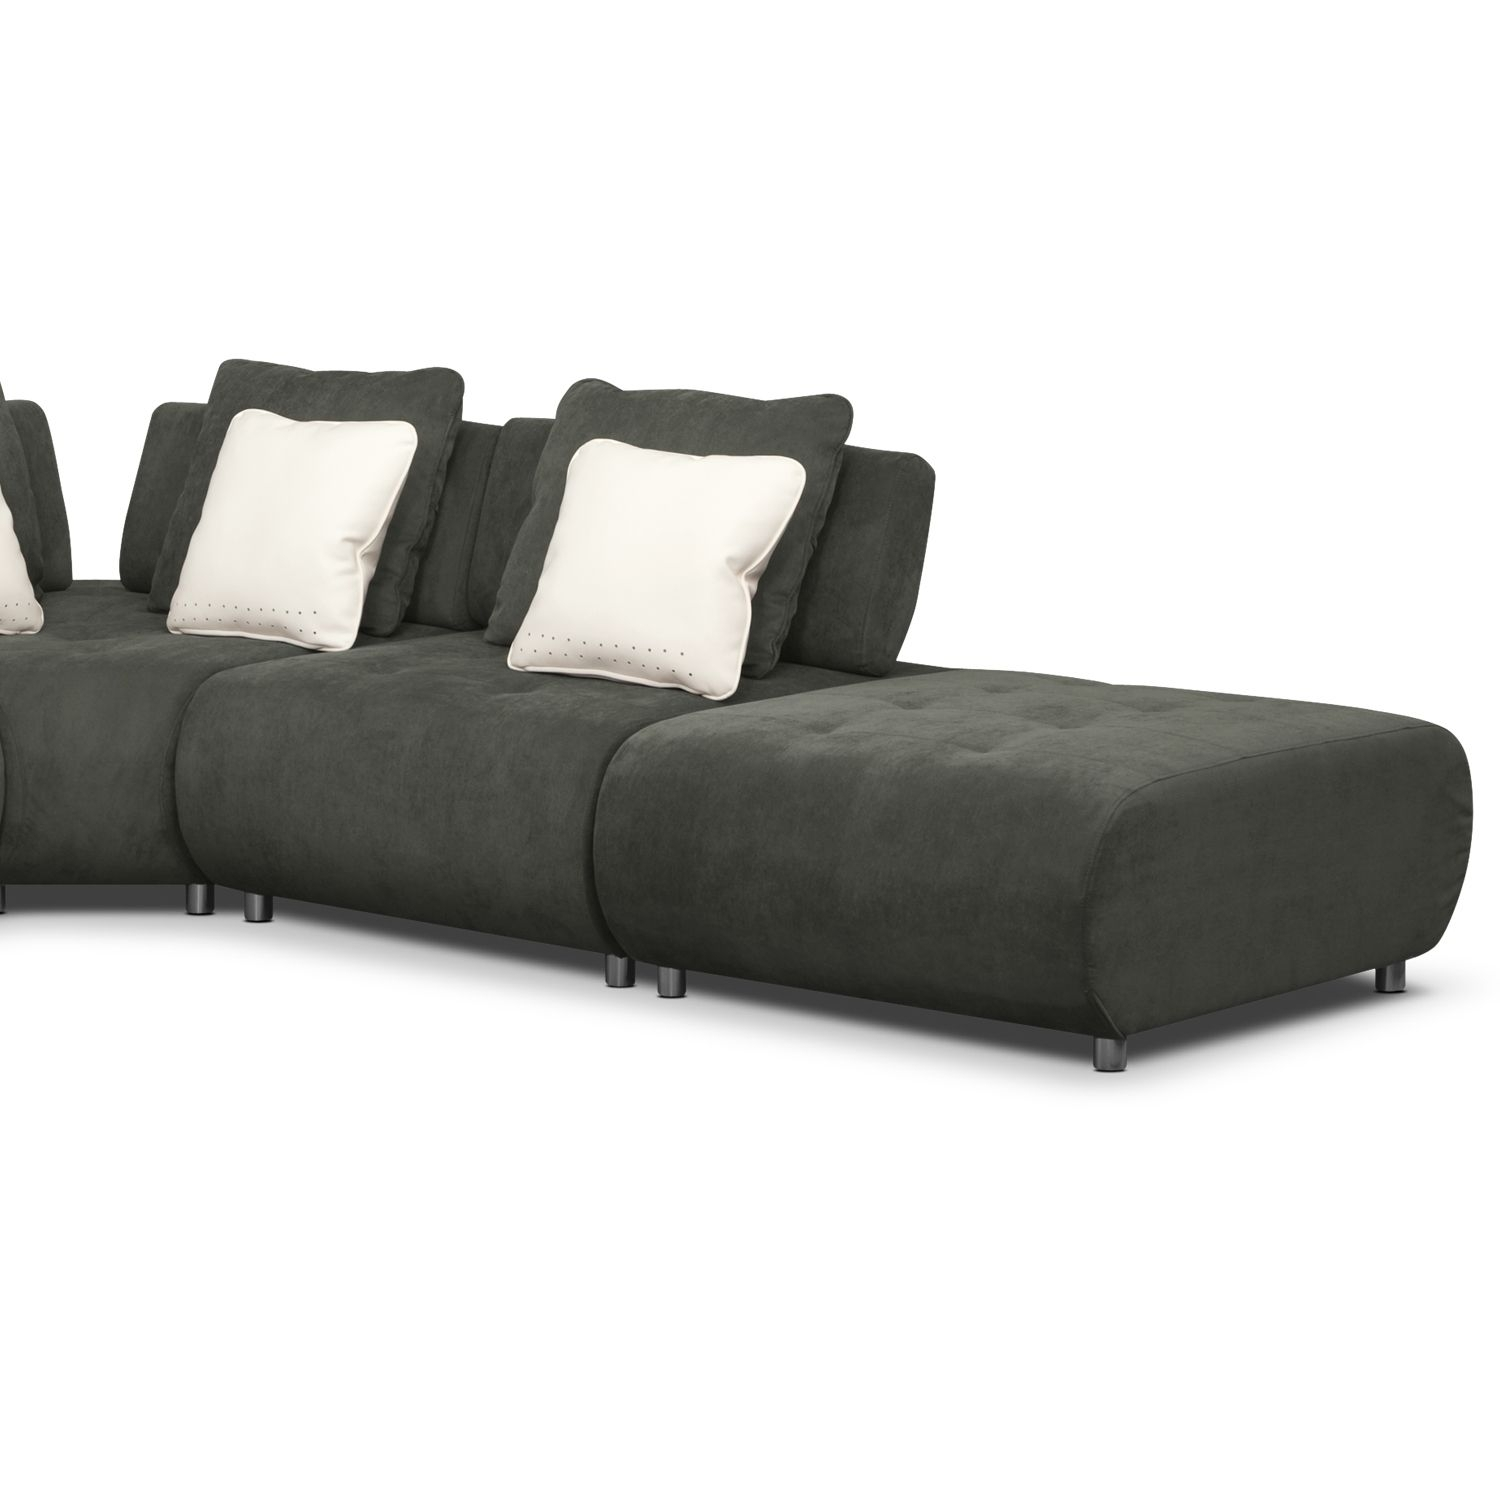 Bongo 5-Piece Sectional | Value City Furniture | Living Room in Marcus Chocolate 6 Piece Sectionals With Power Headrest And Usb (Image 4 of 30)